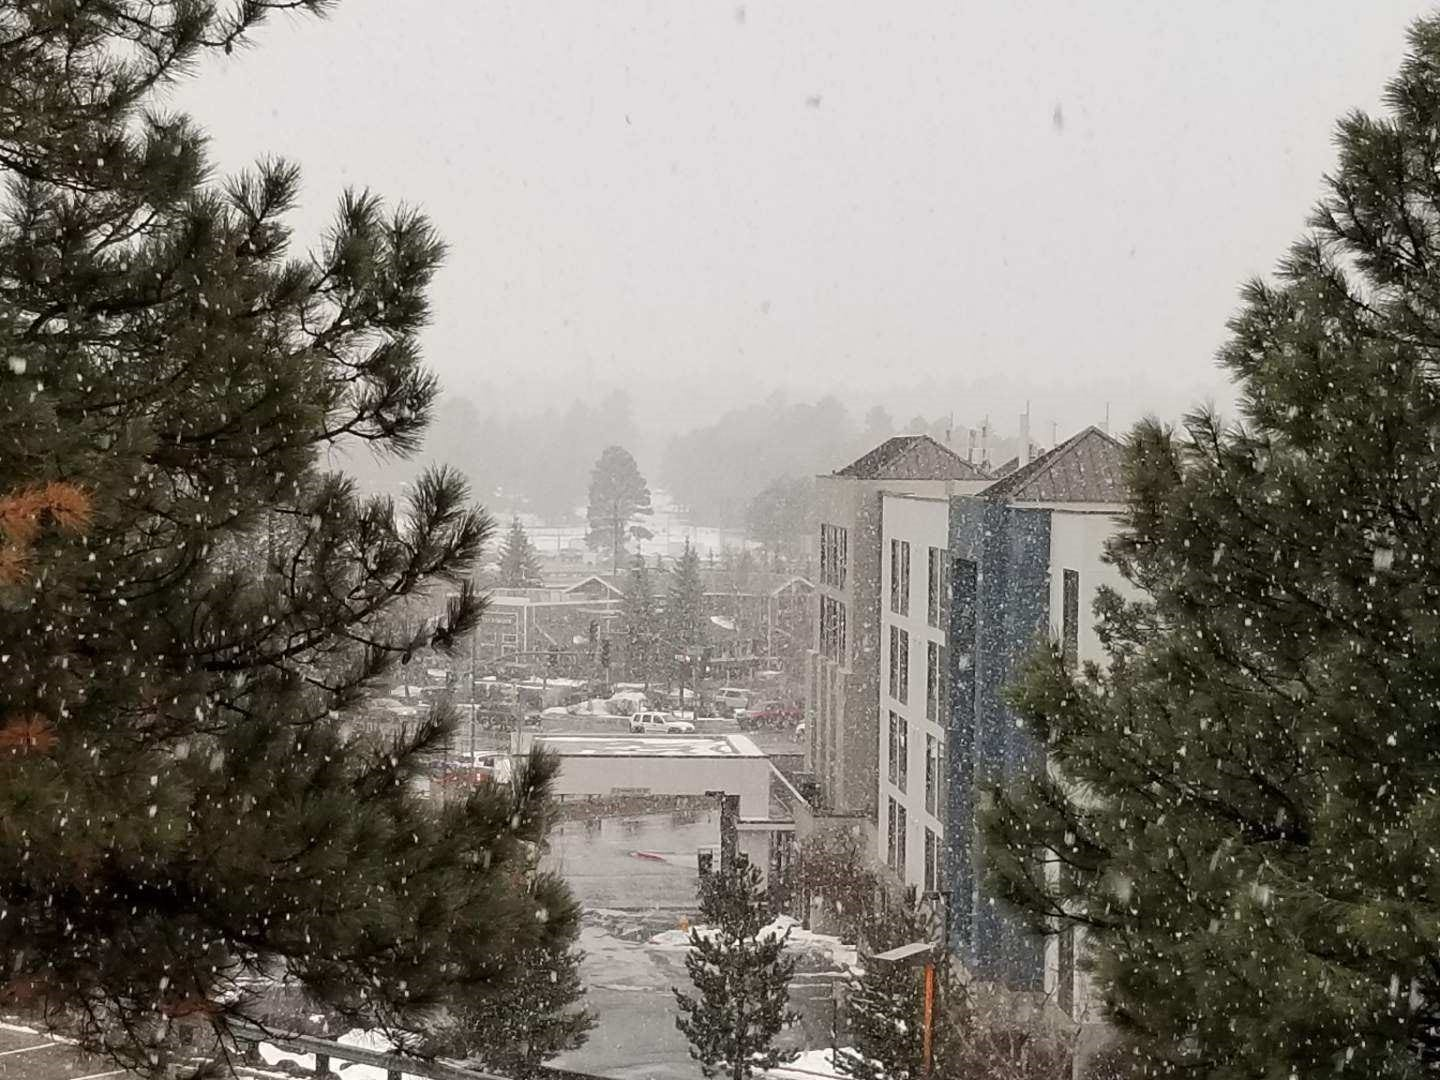 Rain and snow expected in parts of Arizona as storm rolls through